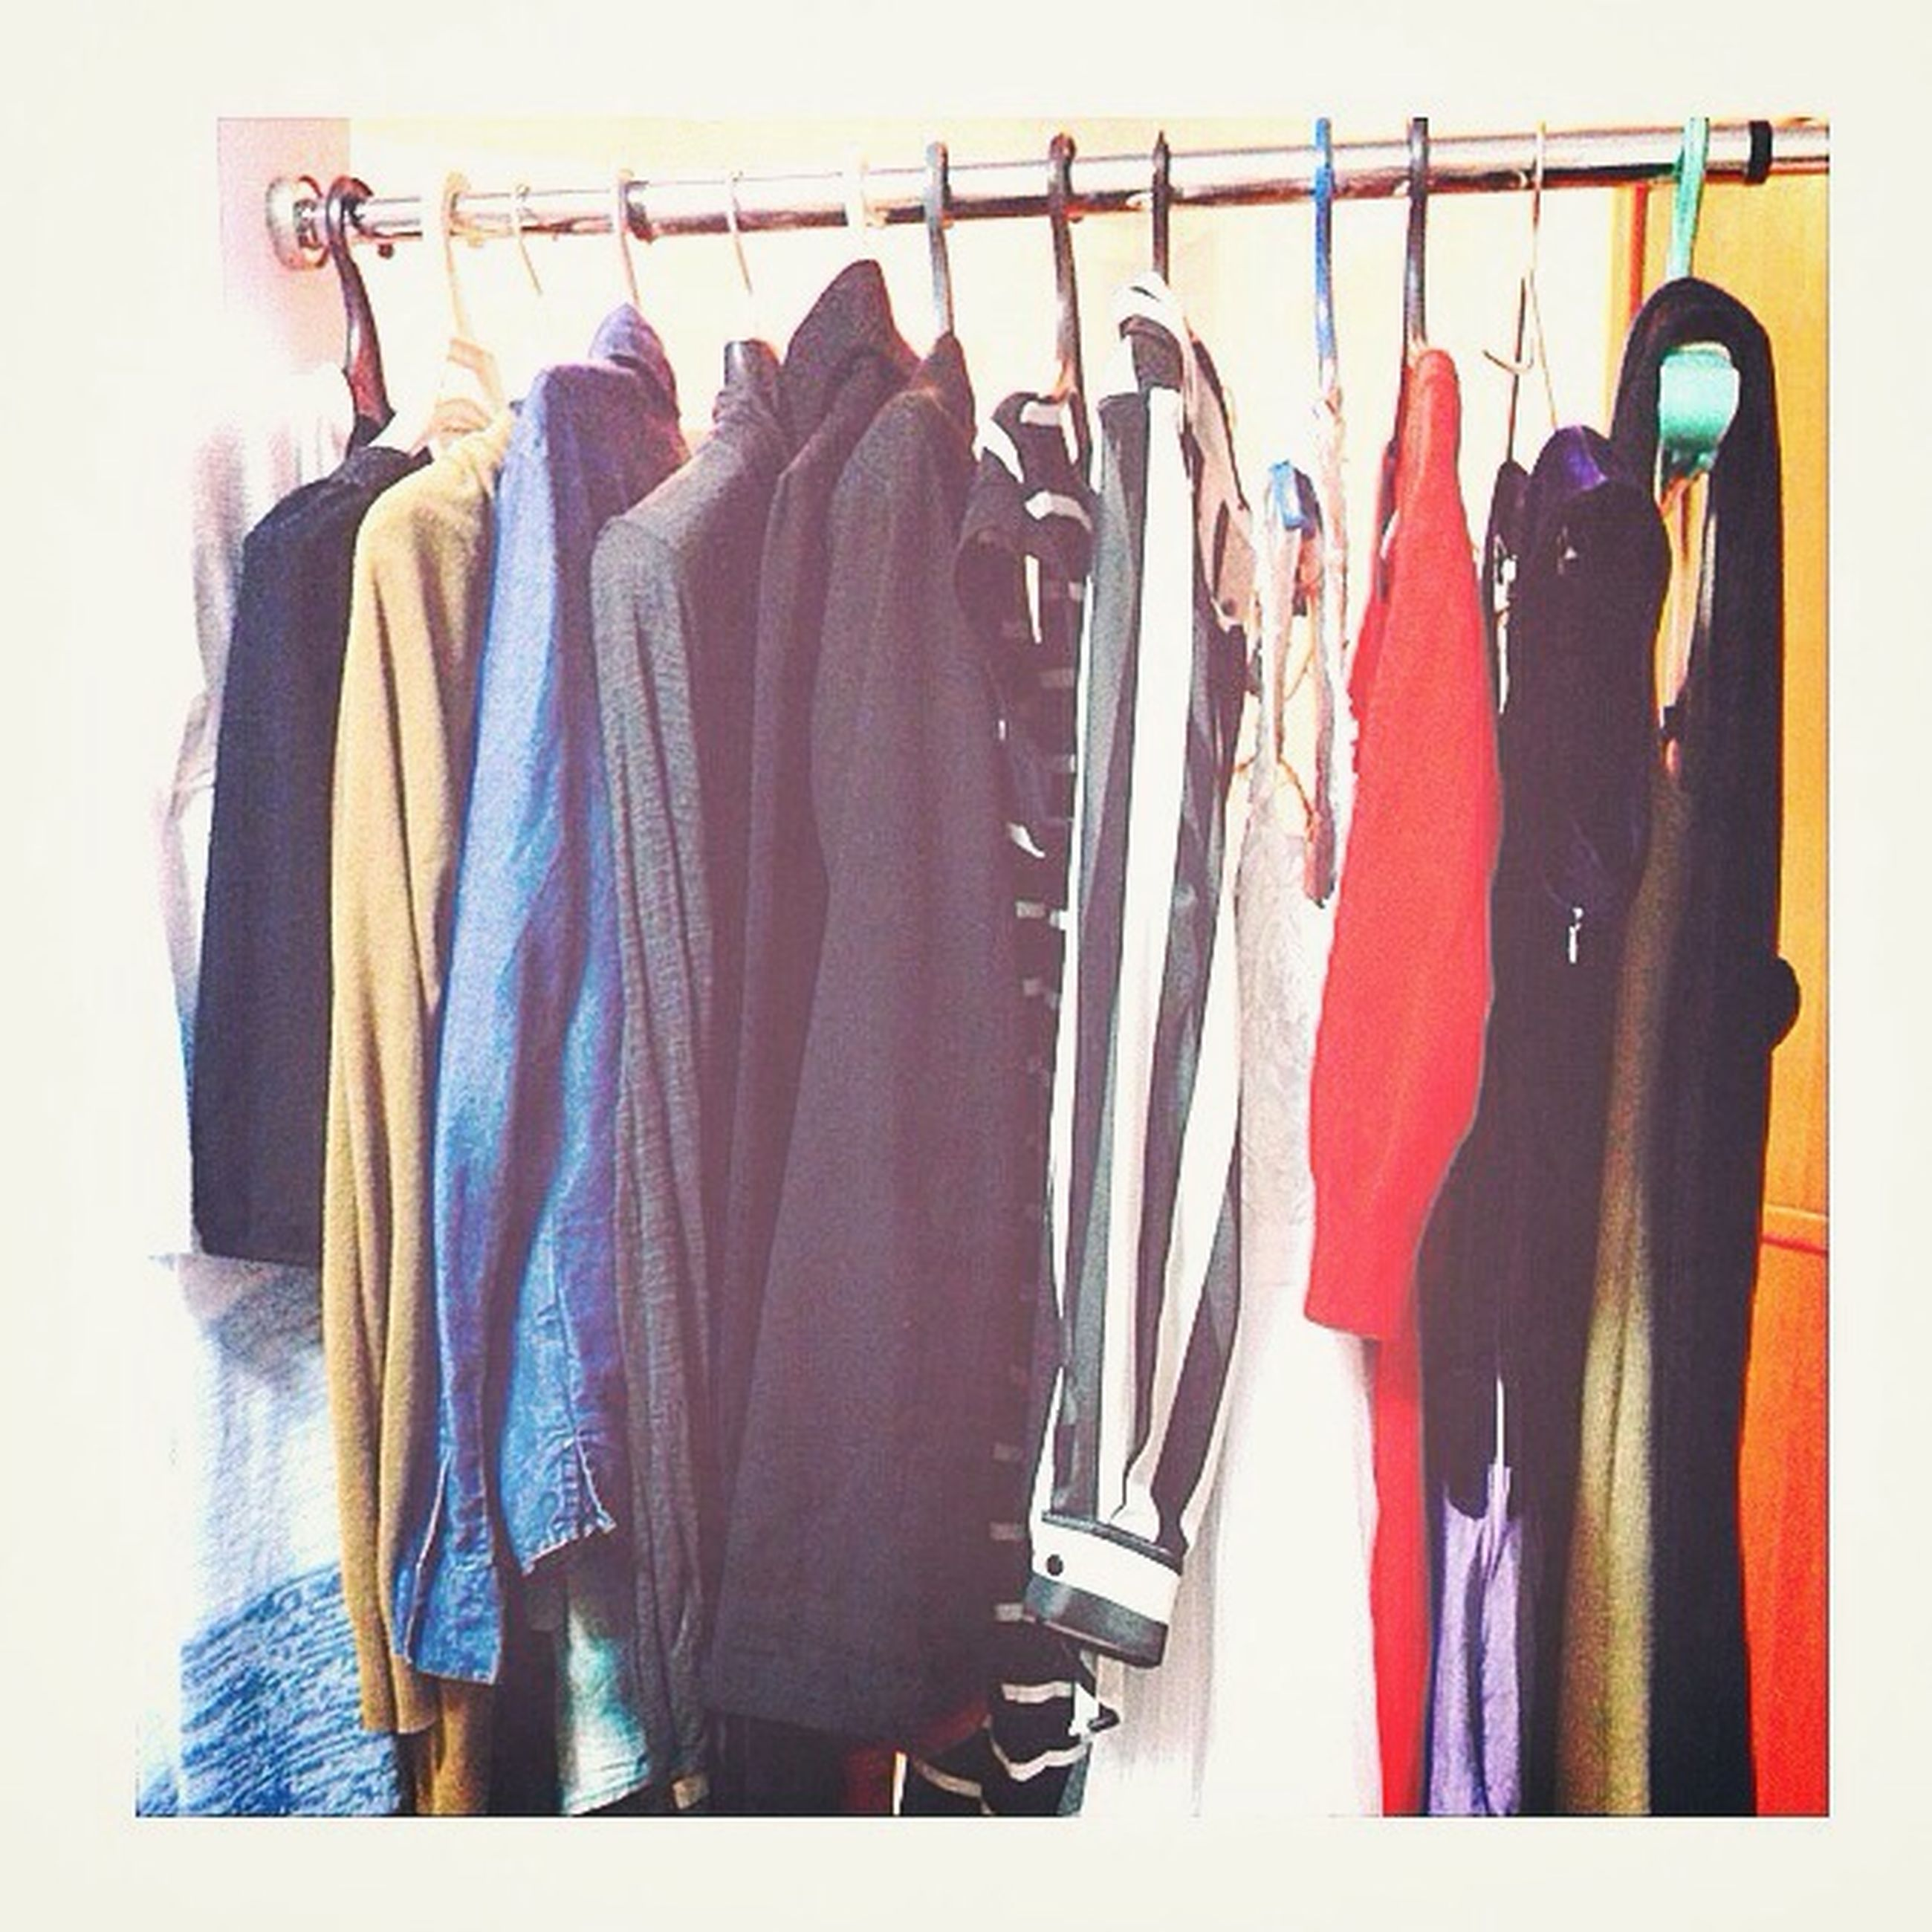 indoors, variation, clothing, hanging, still life, choice, large group of objects, in a row, coathanger, textile, arrangement, fashion, abundance, retail, side by side, equipment, musical instrument, close-up, shopping, group of objects